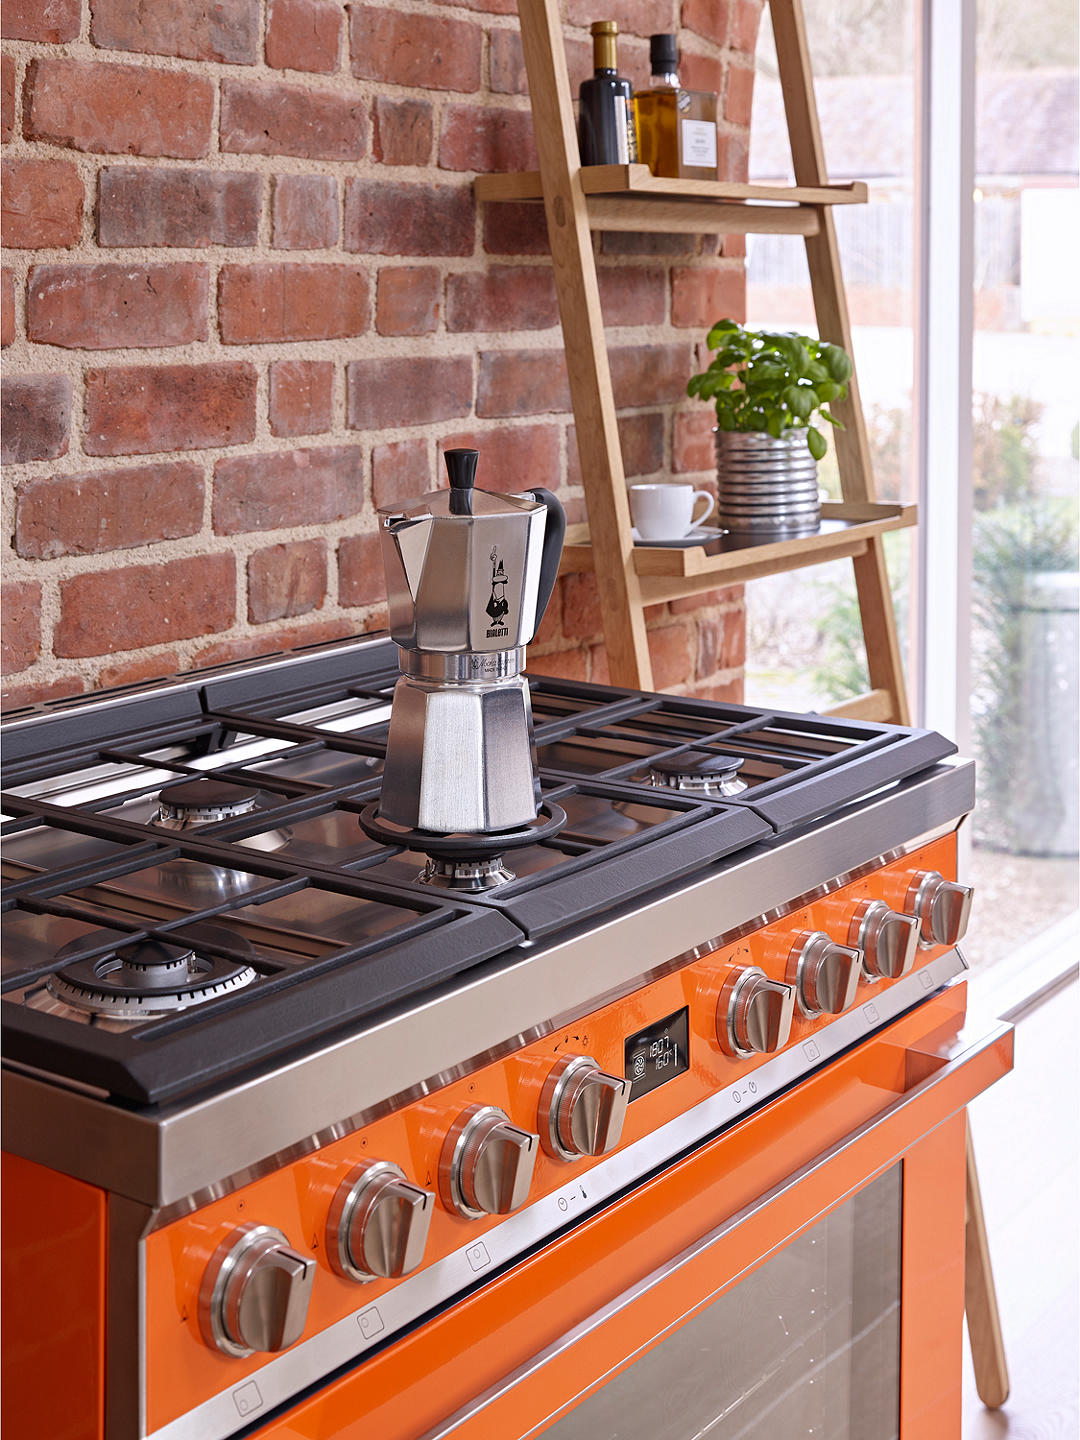 Buy Smeg Portofino CPF9GPOR Dual Fuel Range Cooker, A+ Energy Rating, Orange Online at johnlewis.com